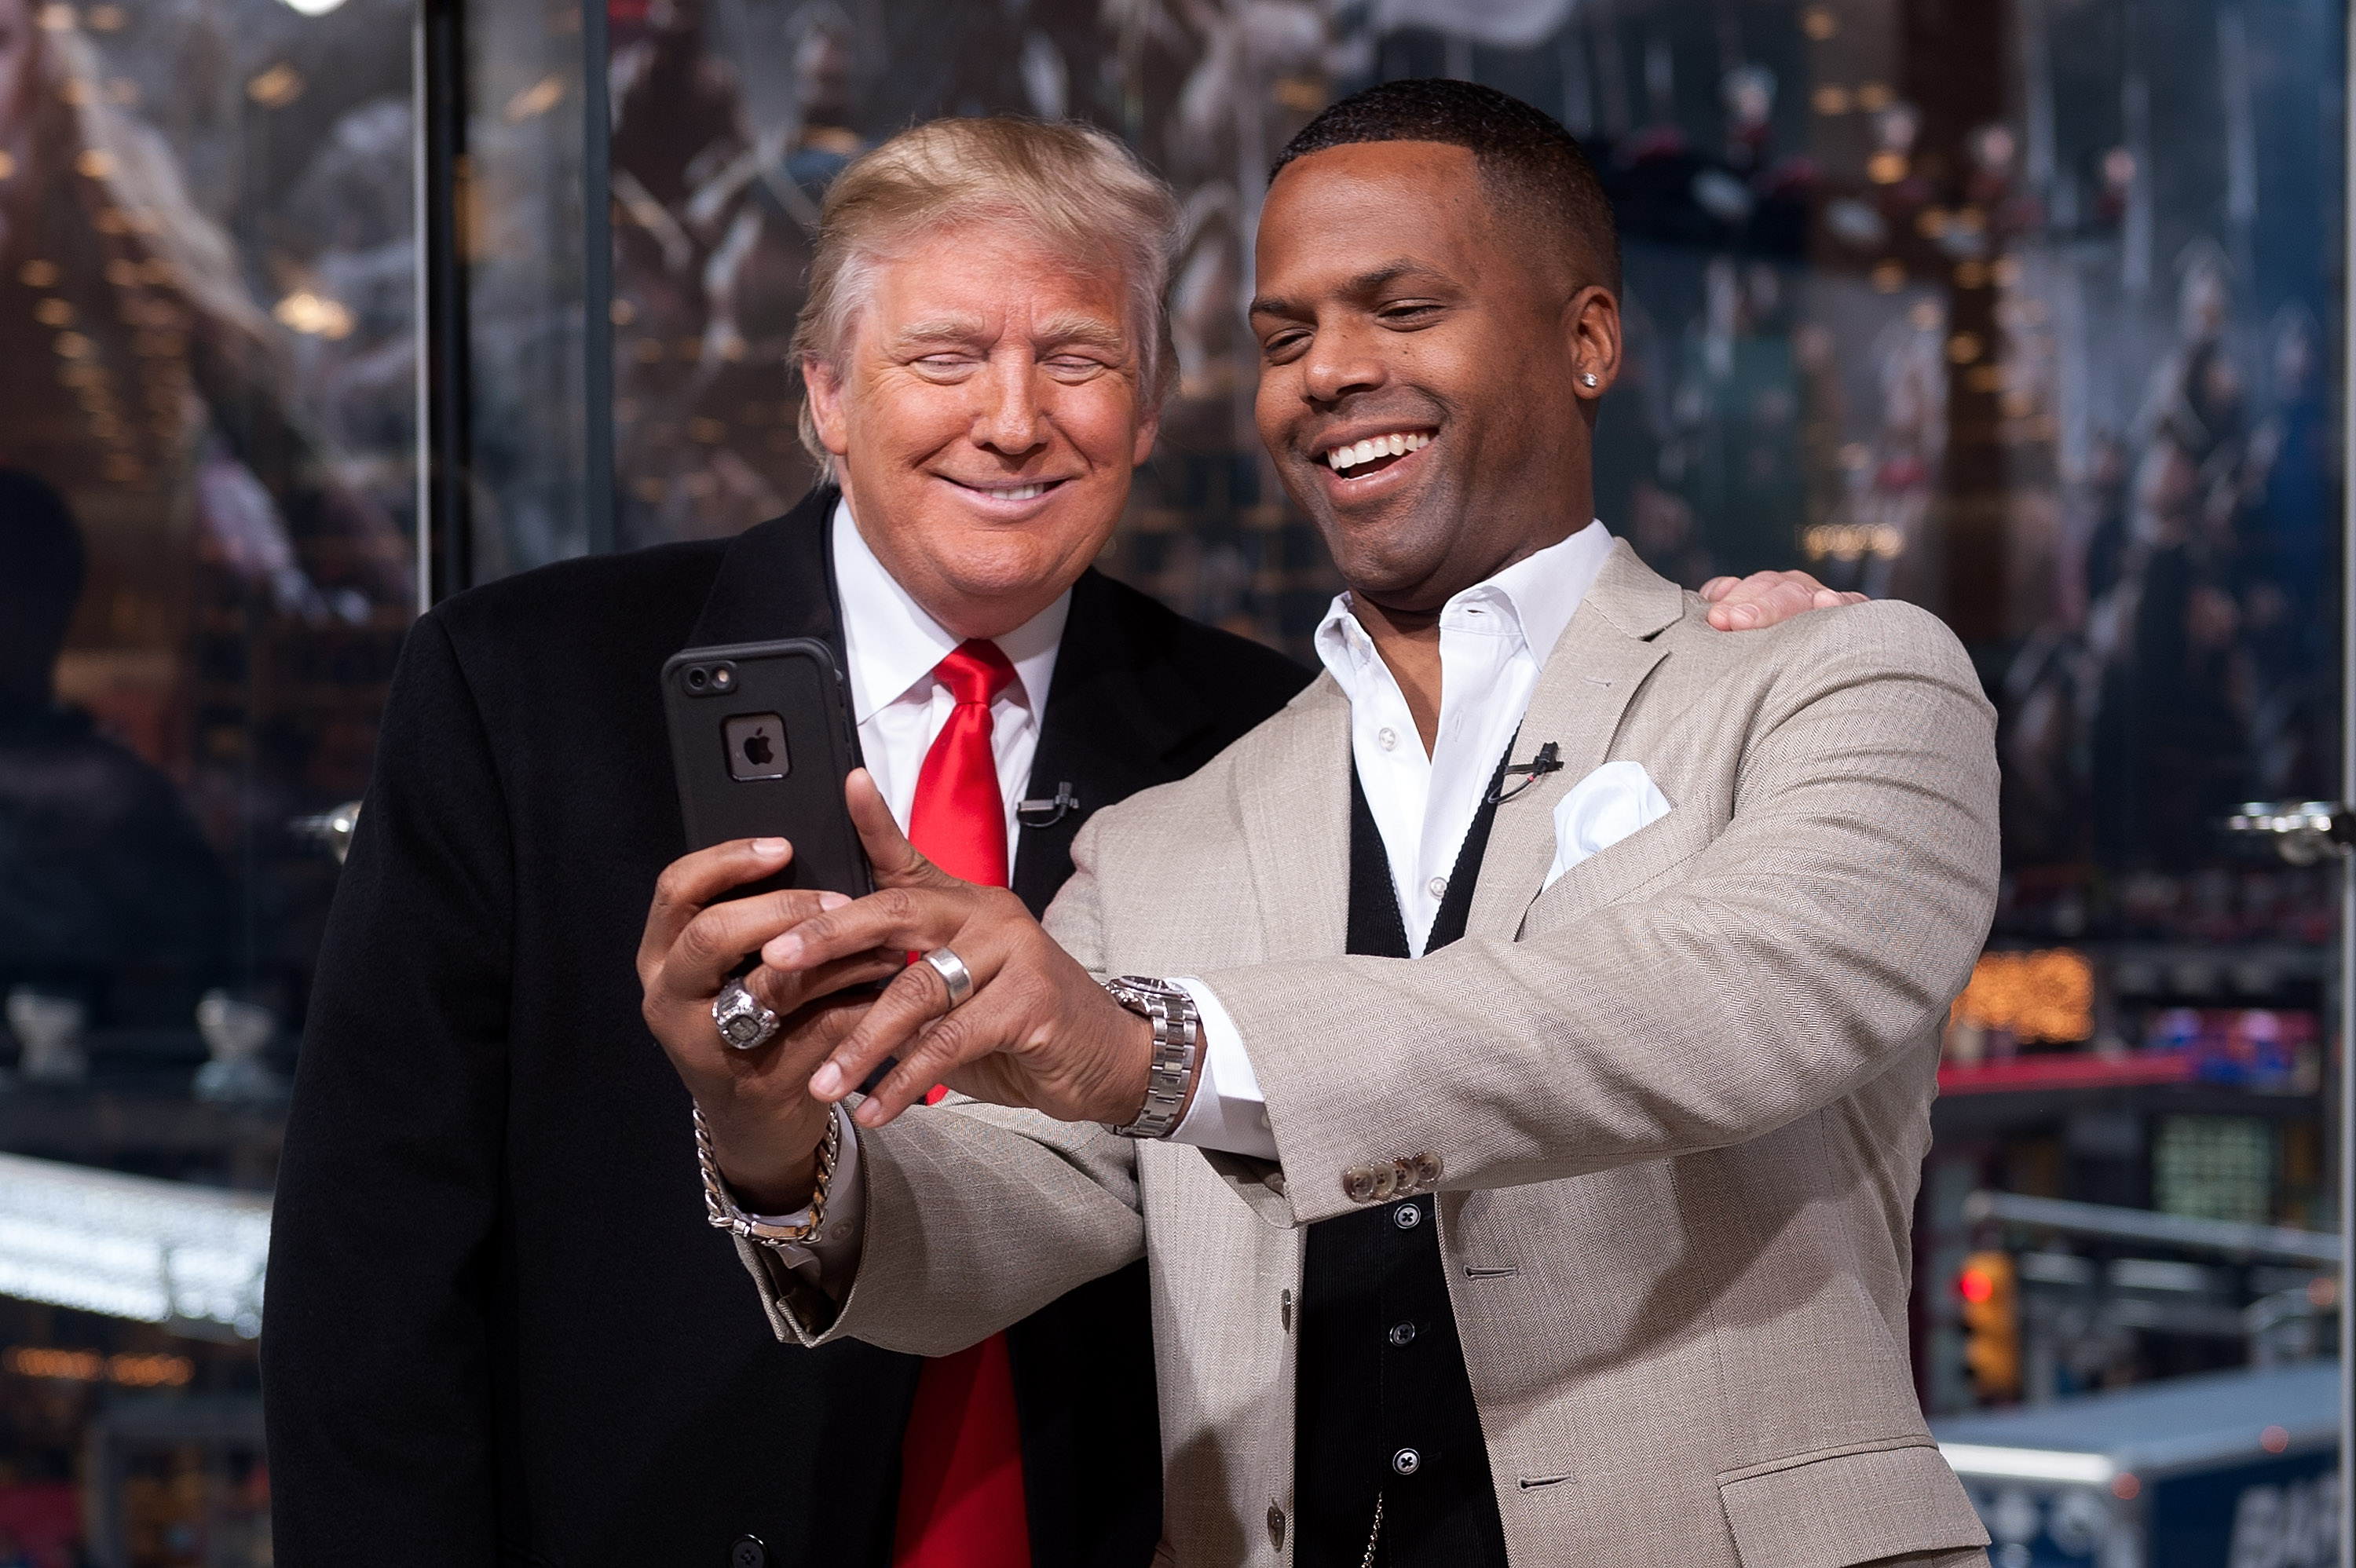 NEW YORK, NY - DECEMBER 17:  AJ Calloway (R) interviews Donald Trump during his visit to 'Extra' at their New York studios at H&M in Times Square on December 17, 2014 in New York City.  (Photo by D Dipasupil/Getty Images for Extra)